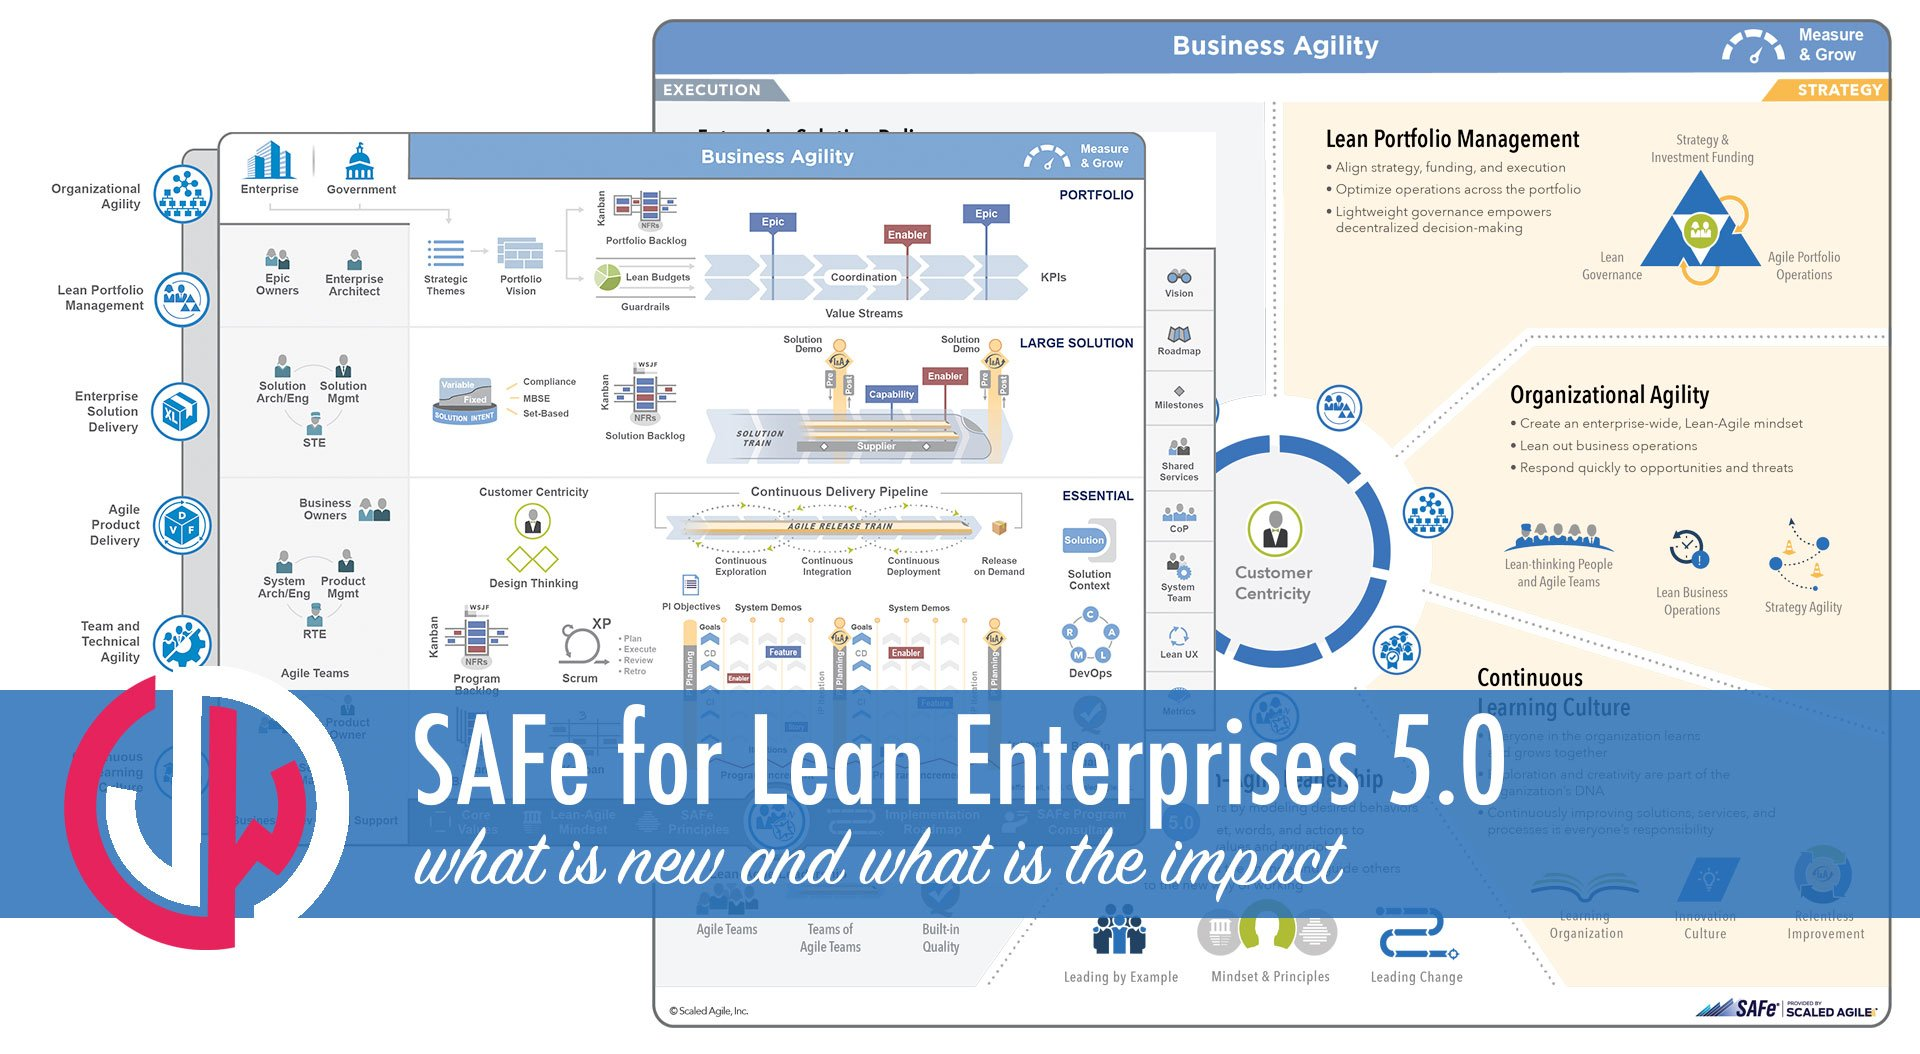 SAFe for Lean Enterprises 5.0 - what is new and what is the impact